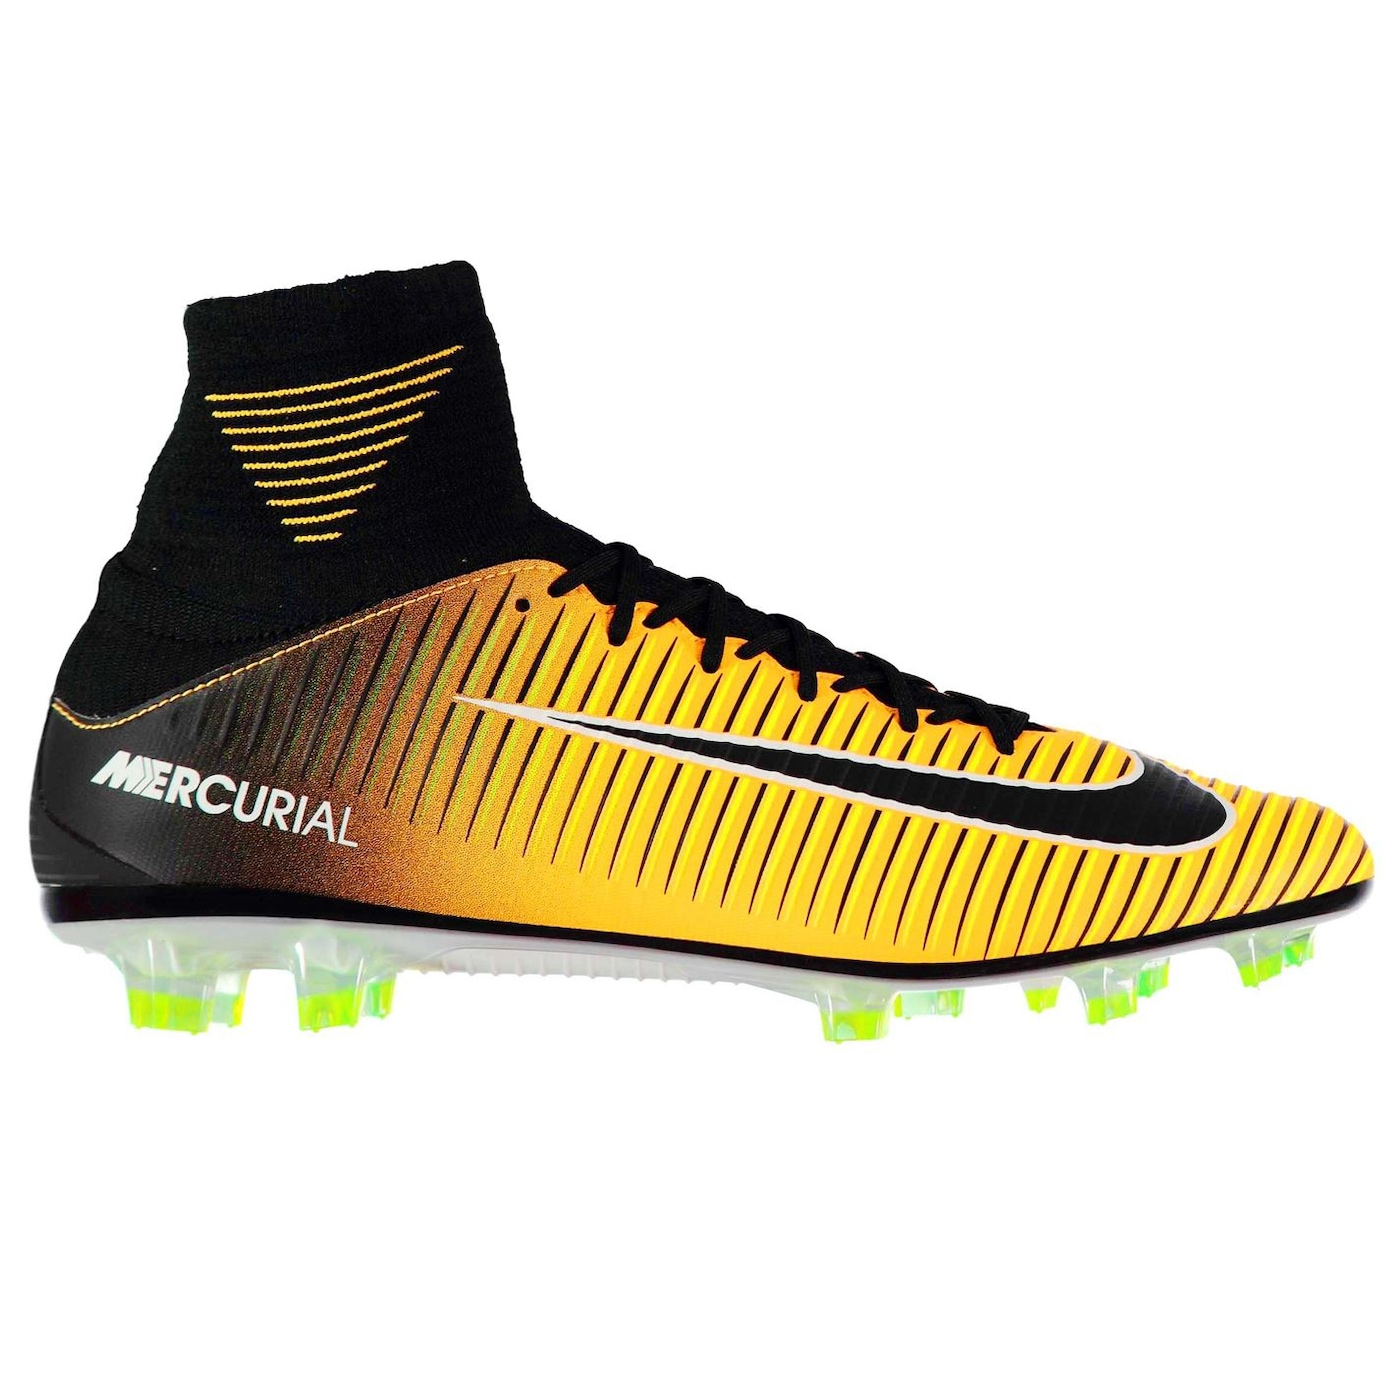 Nike Mercurial Veloce Dynamic Fit FG Football Boots Mens